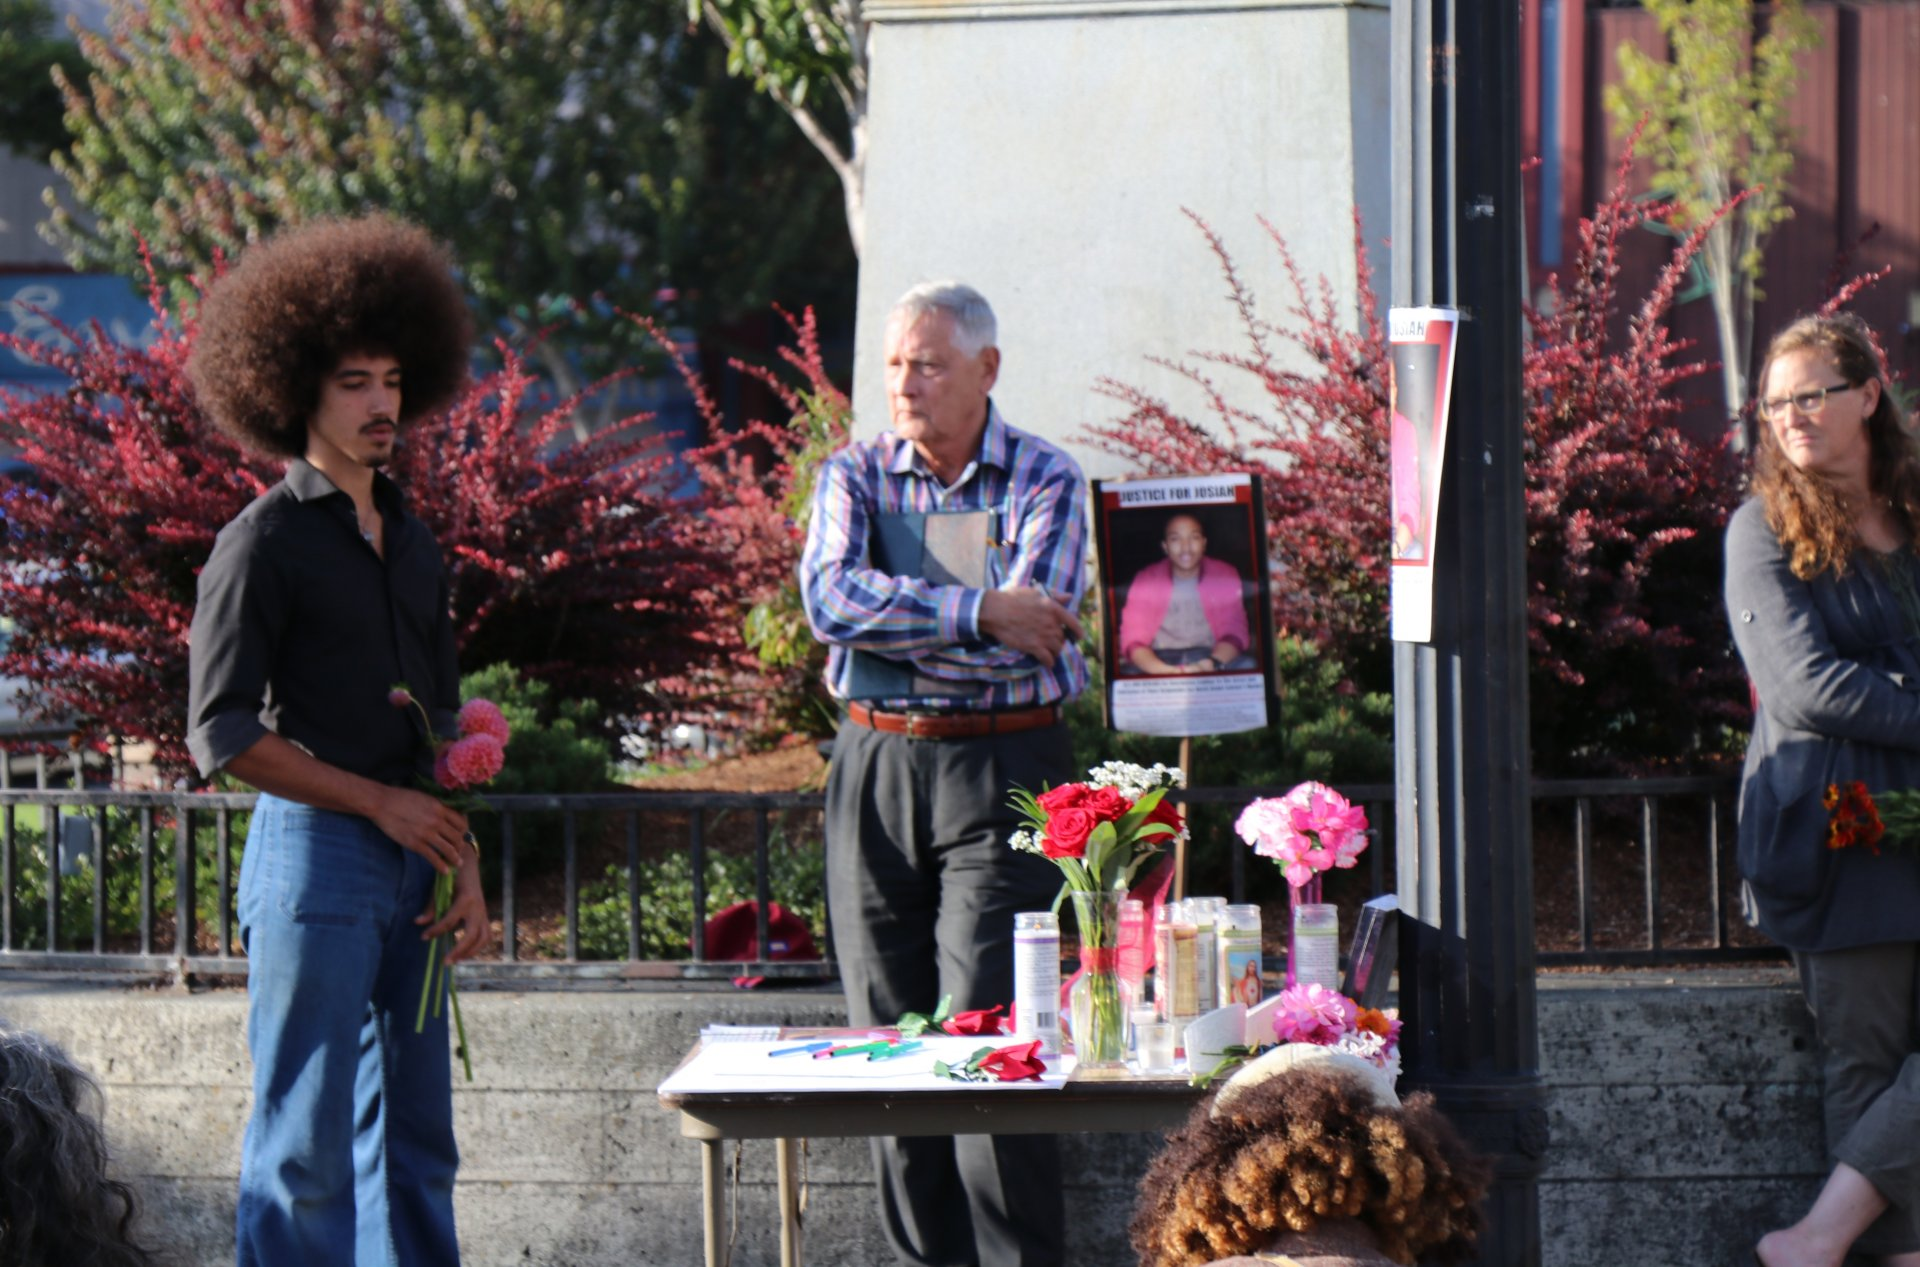 Leonard Perry prepares to lay flowers at a vigil for David Josiah Lawson, August 15, Arcata Plaza. | Photo by Curran Daly